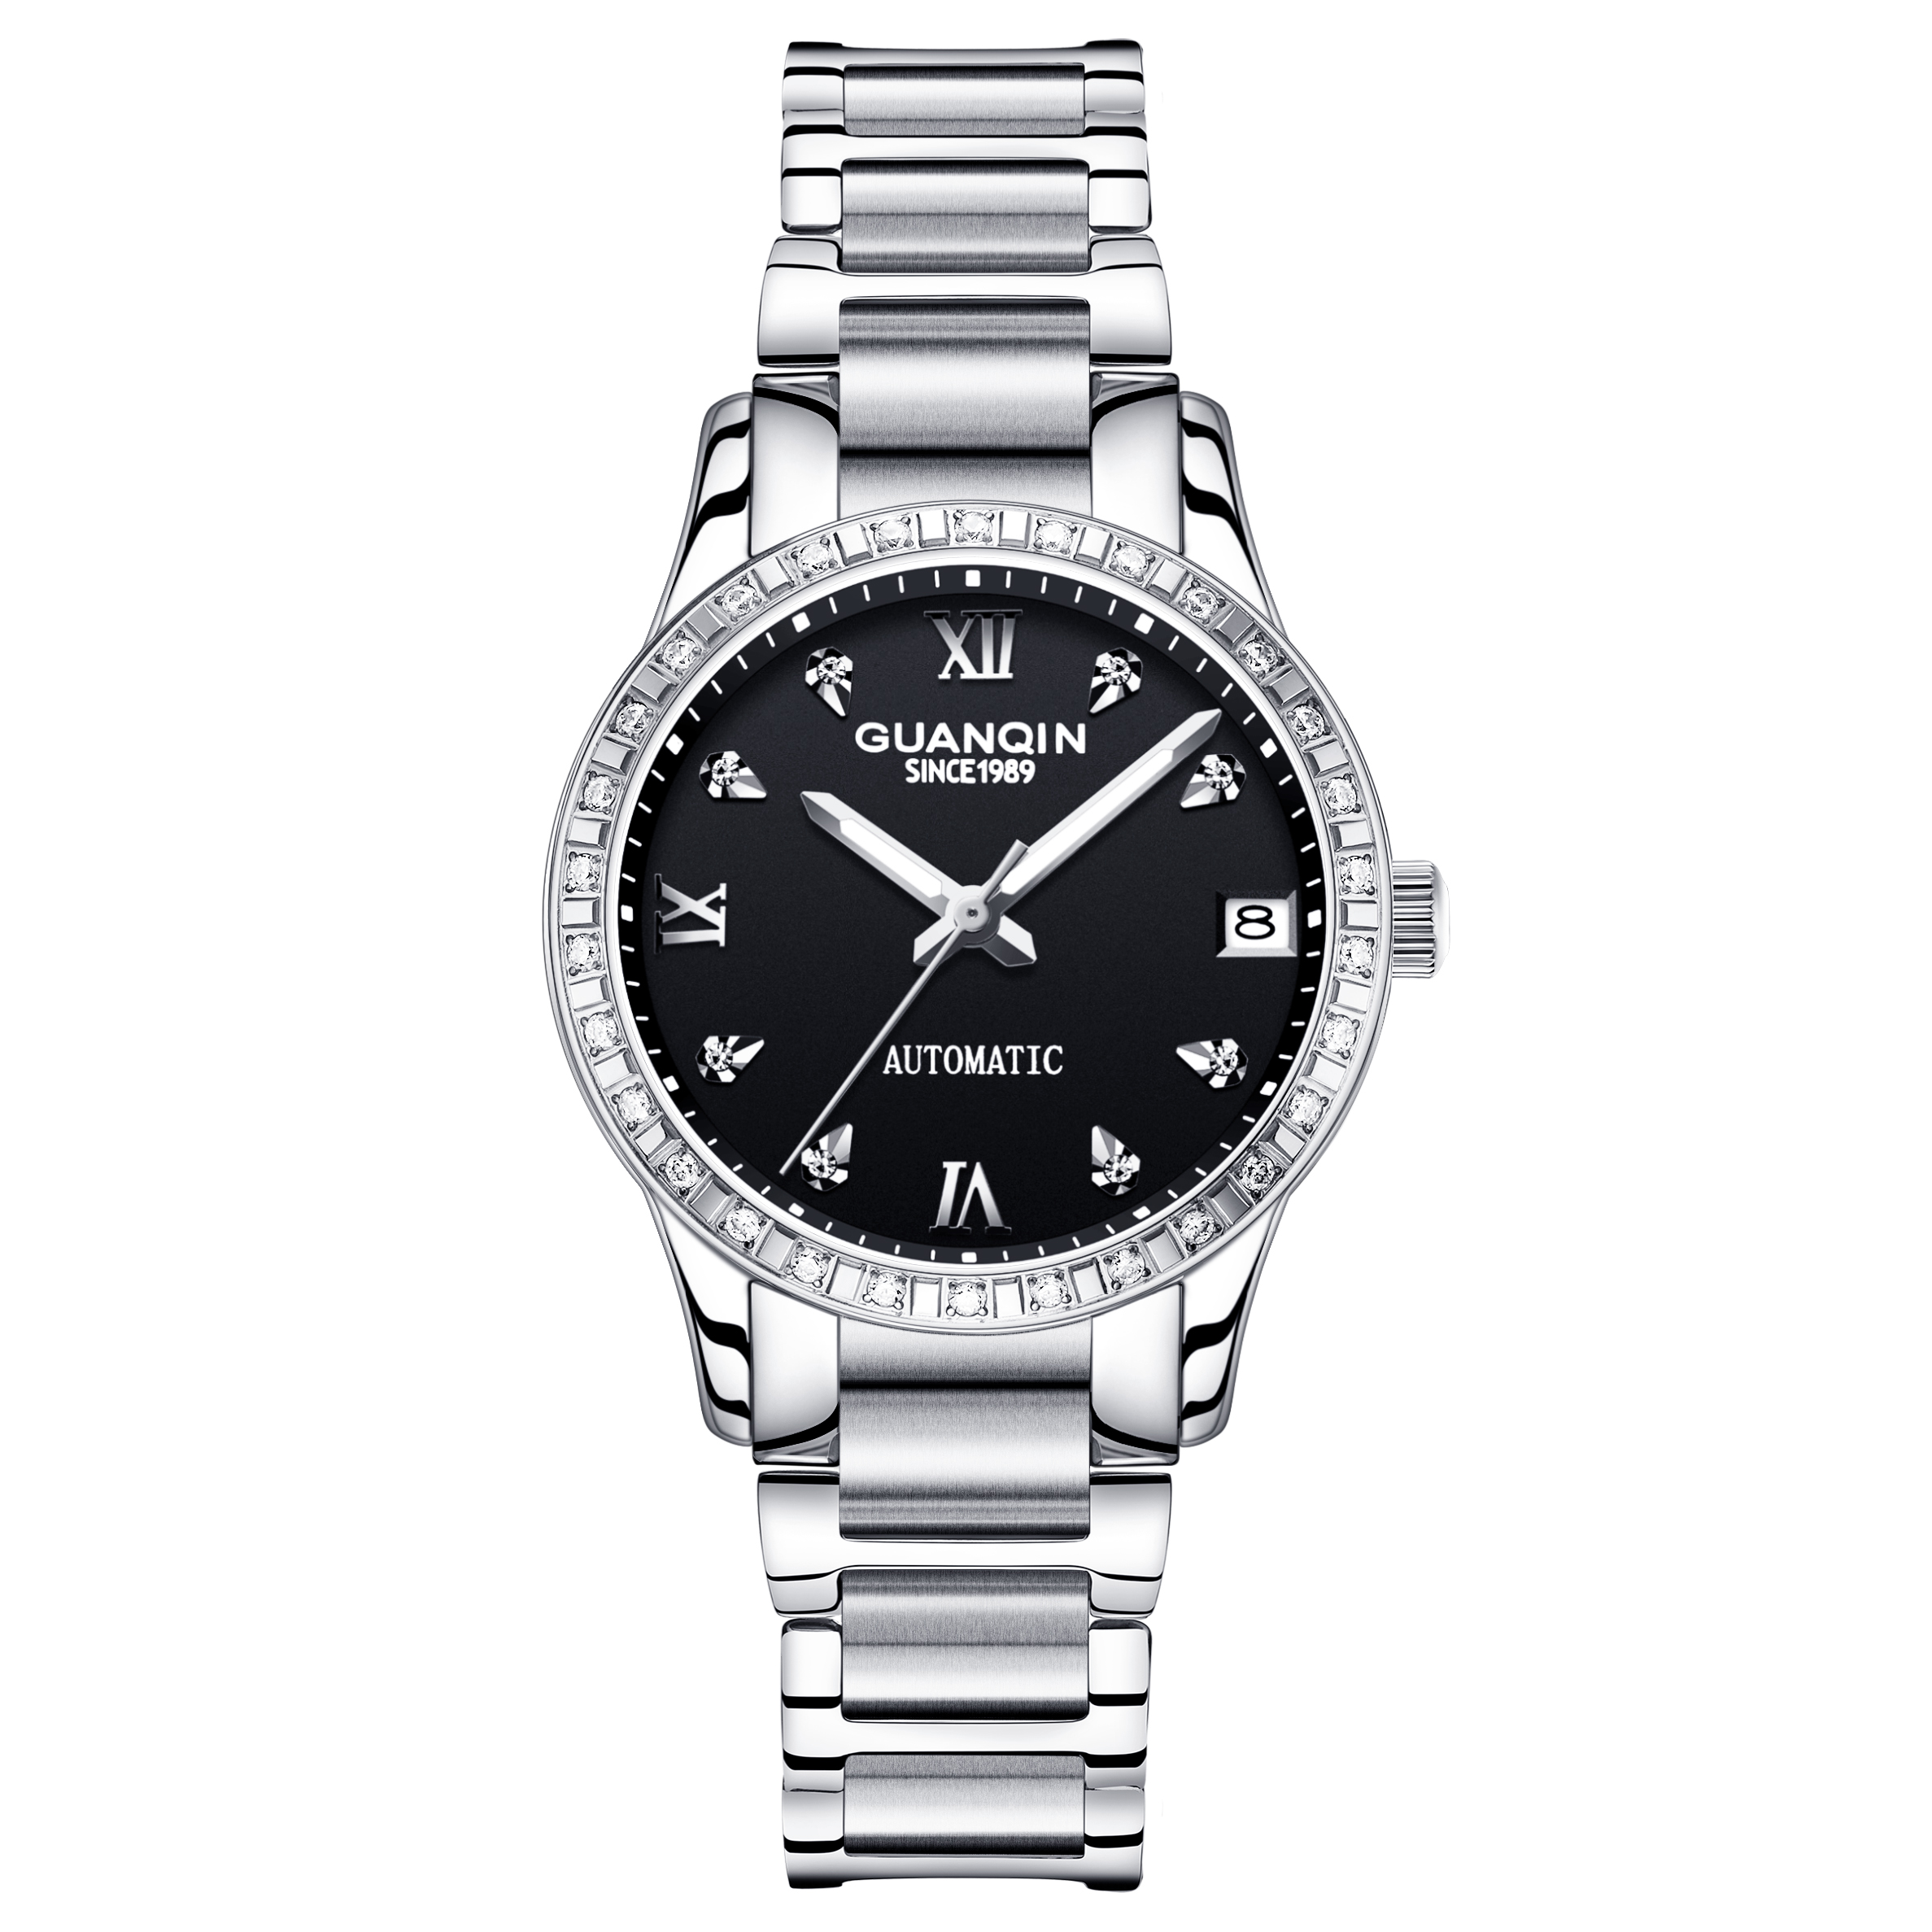 Hot Sale Mop Lady Watches In Wristwatches Elegant <strong>Ceramic</strong> Band Diamond <strong>Case</strong> Women Watch